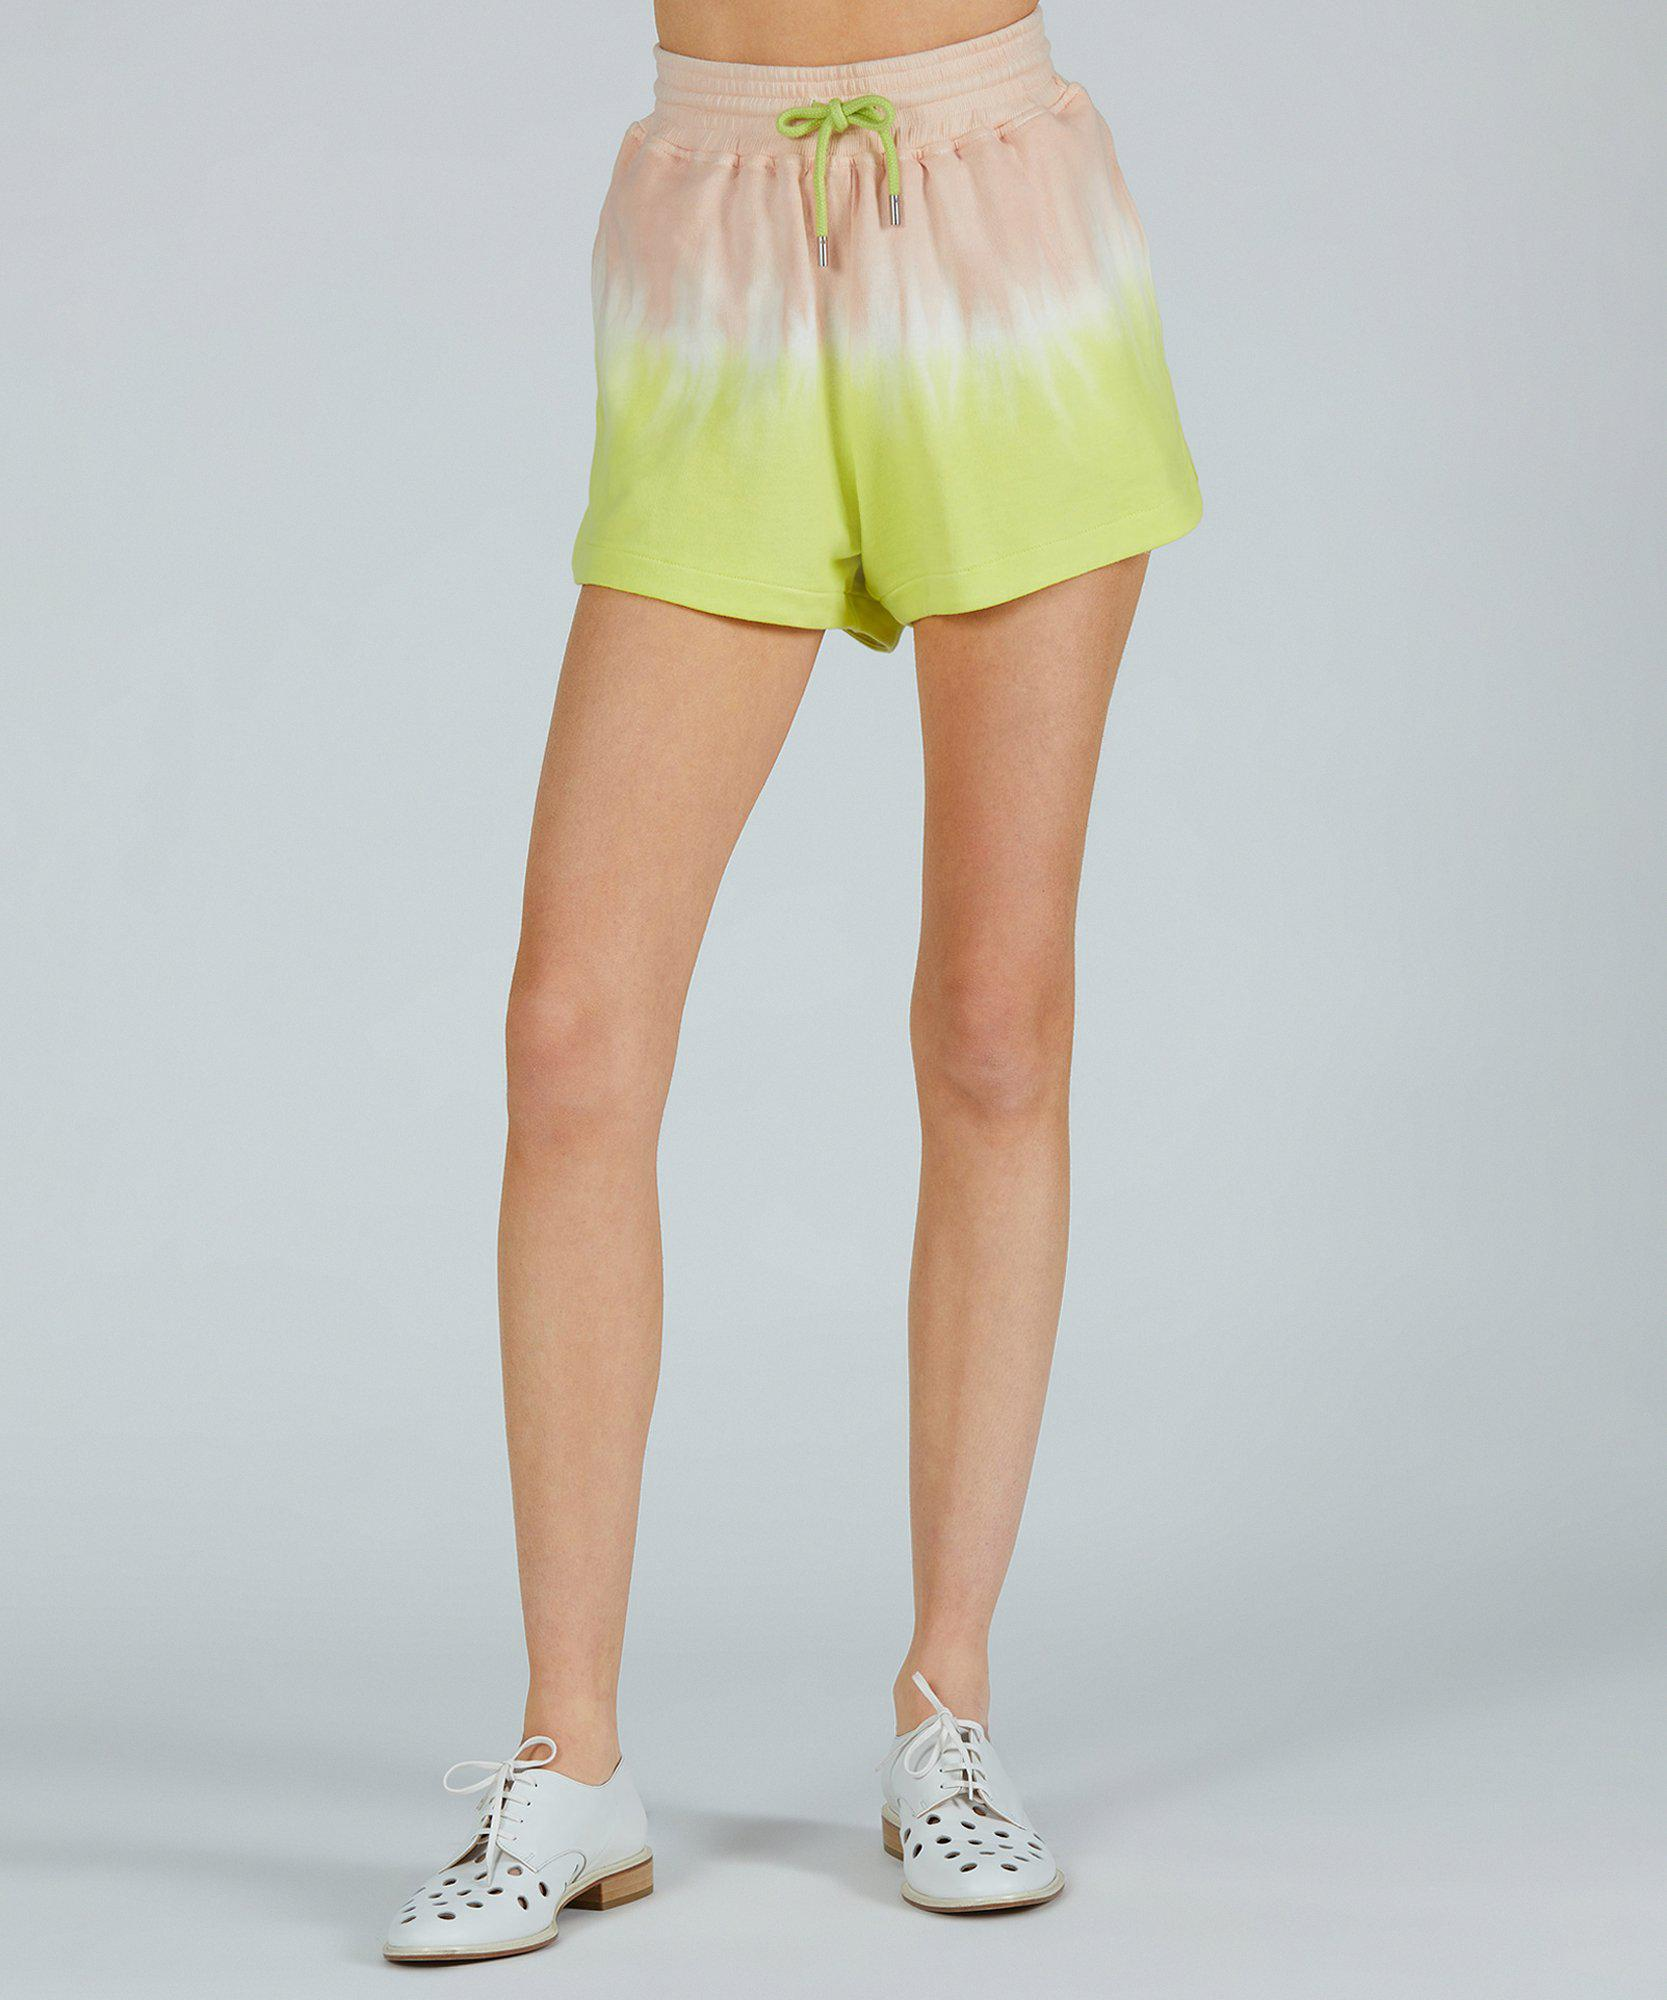 French Terry Pull-On Short - Shell Combo Dip Dye